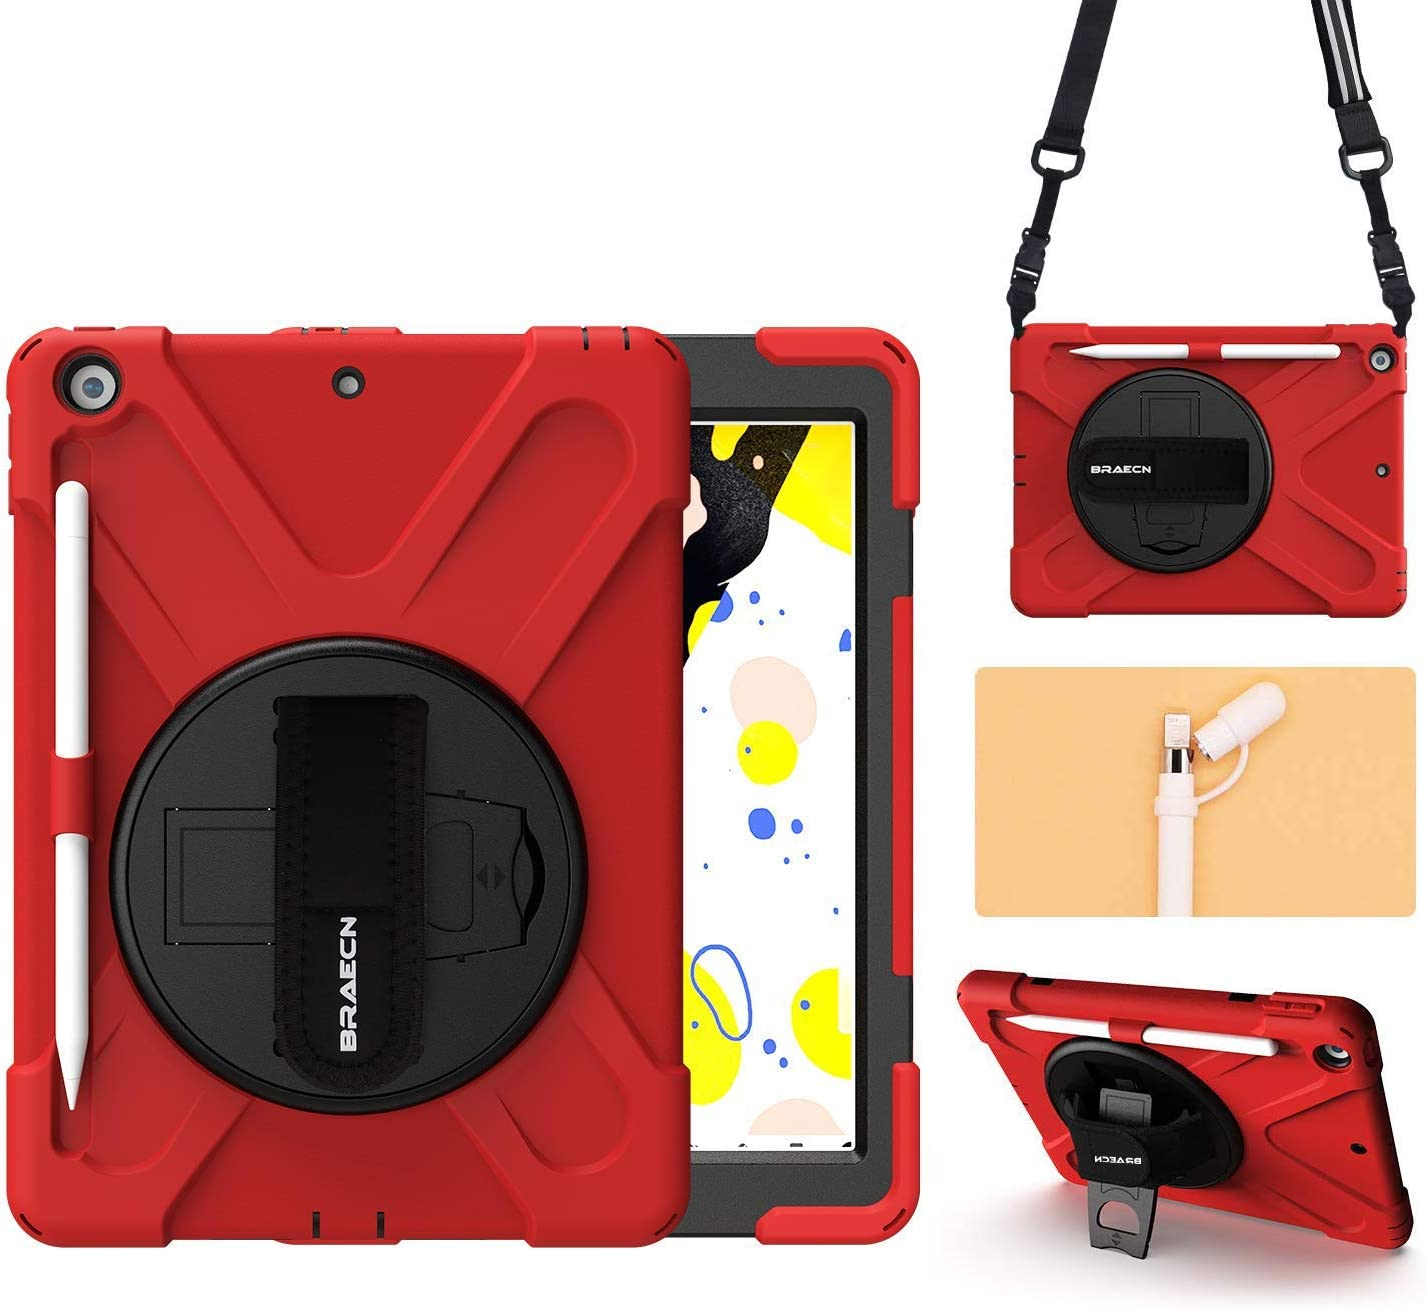 "BRAECN Case for iPad 8th/7th Generation 10.2"" 2020/2019, with [Pencil Holder][Pencil Cap Holder][Storage Pouch][Hand Strap][Carrying Strap][Kickstand] Rugged Heavy Duty Cover for 10.2 inch iPad -Red"